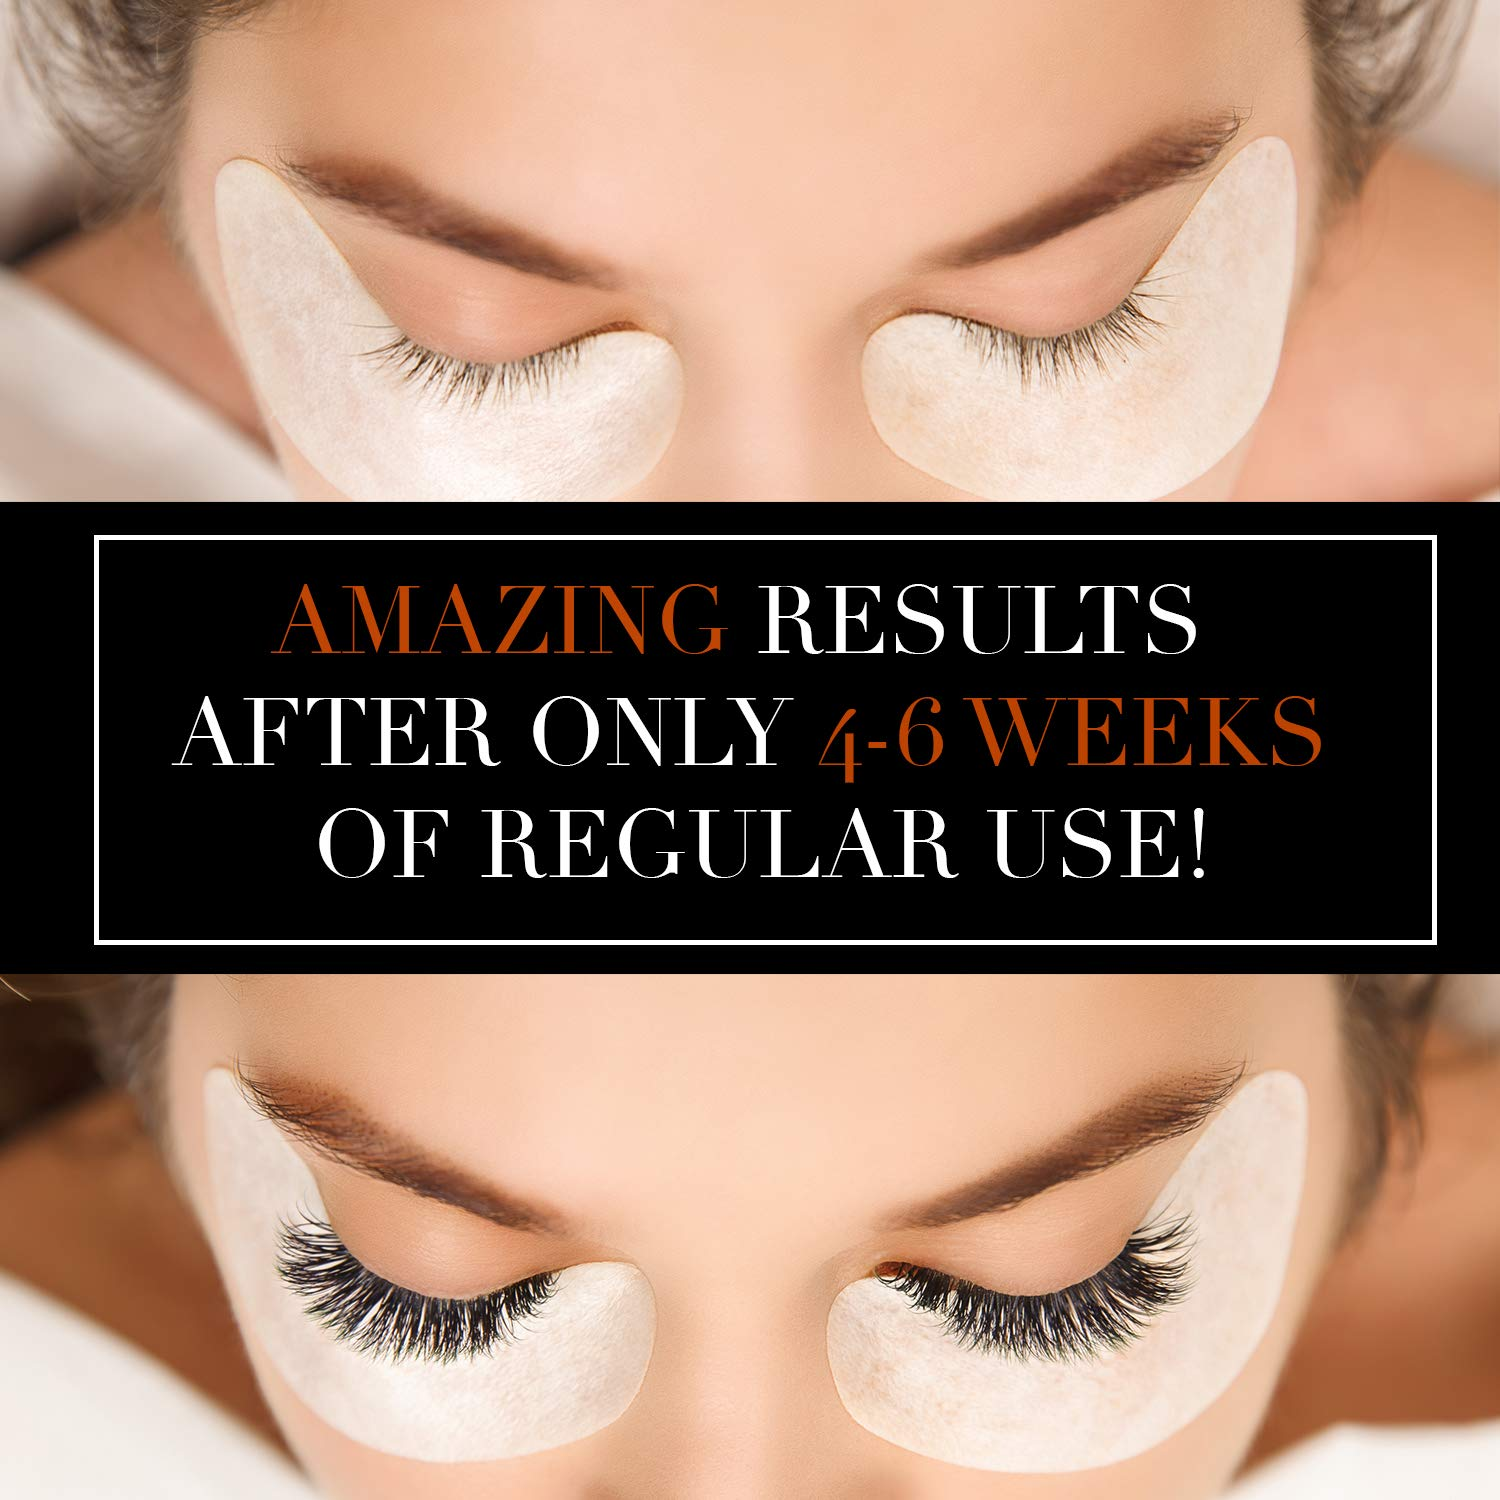 Eyelash Growth Enhancer Serum and Conditioner 4 milliliters by Luxe Lash by Lescale (Image #2)